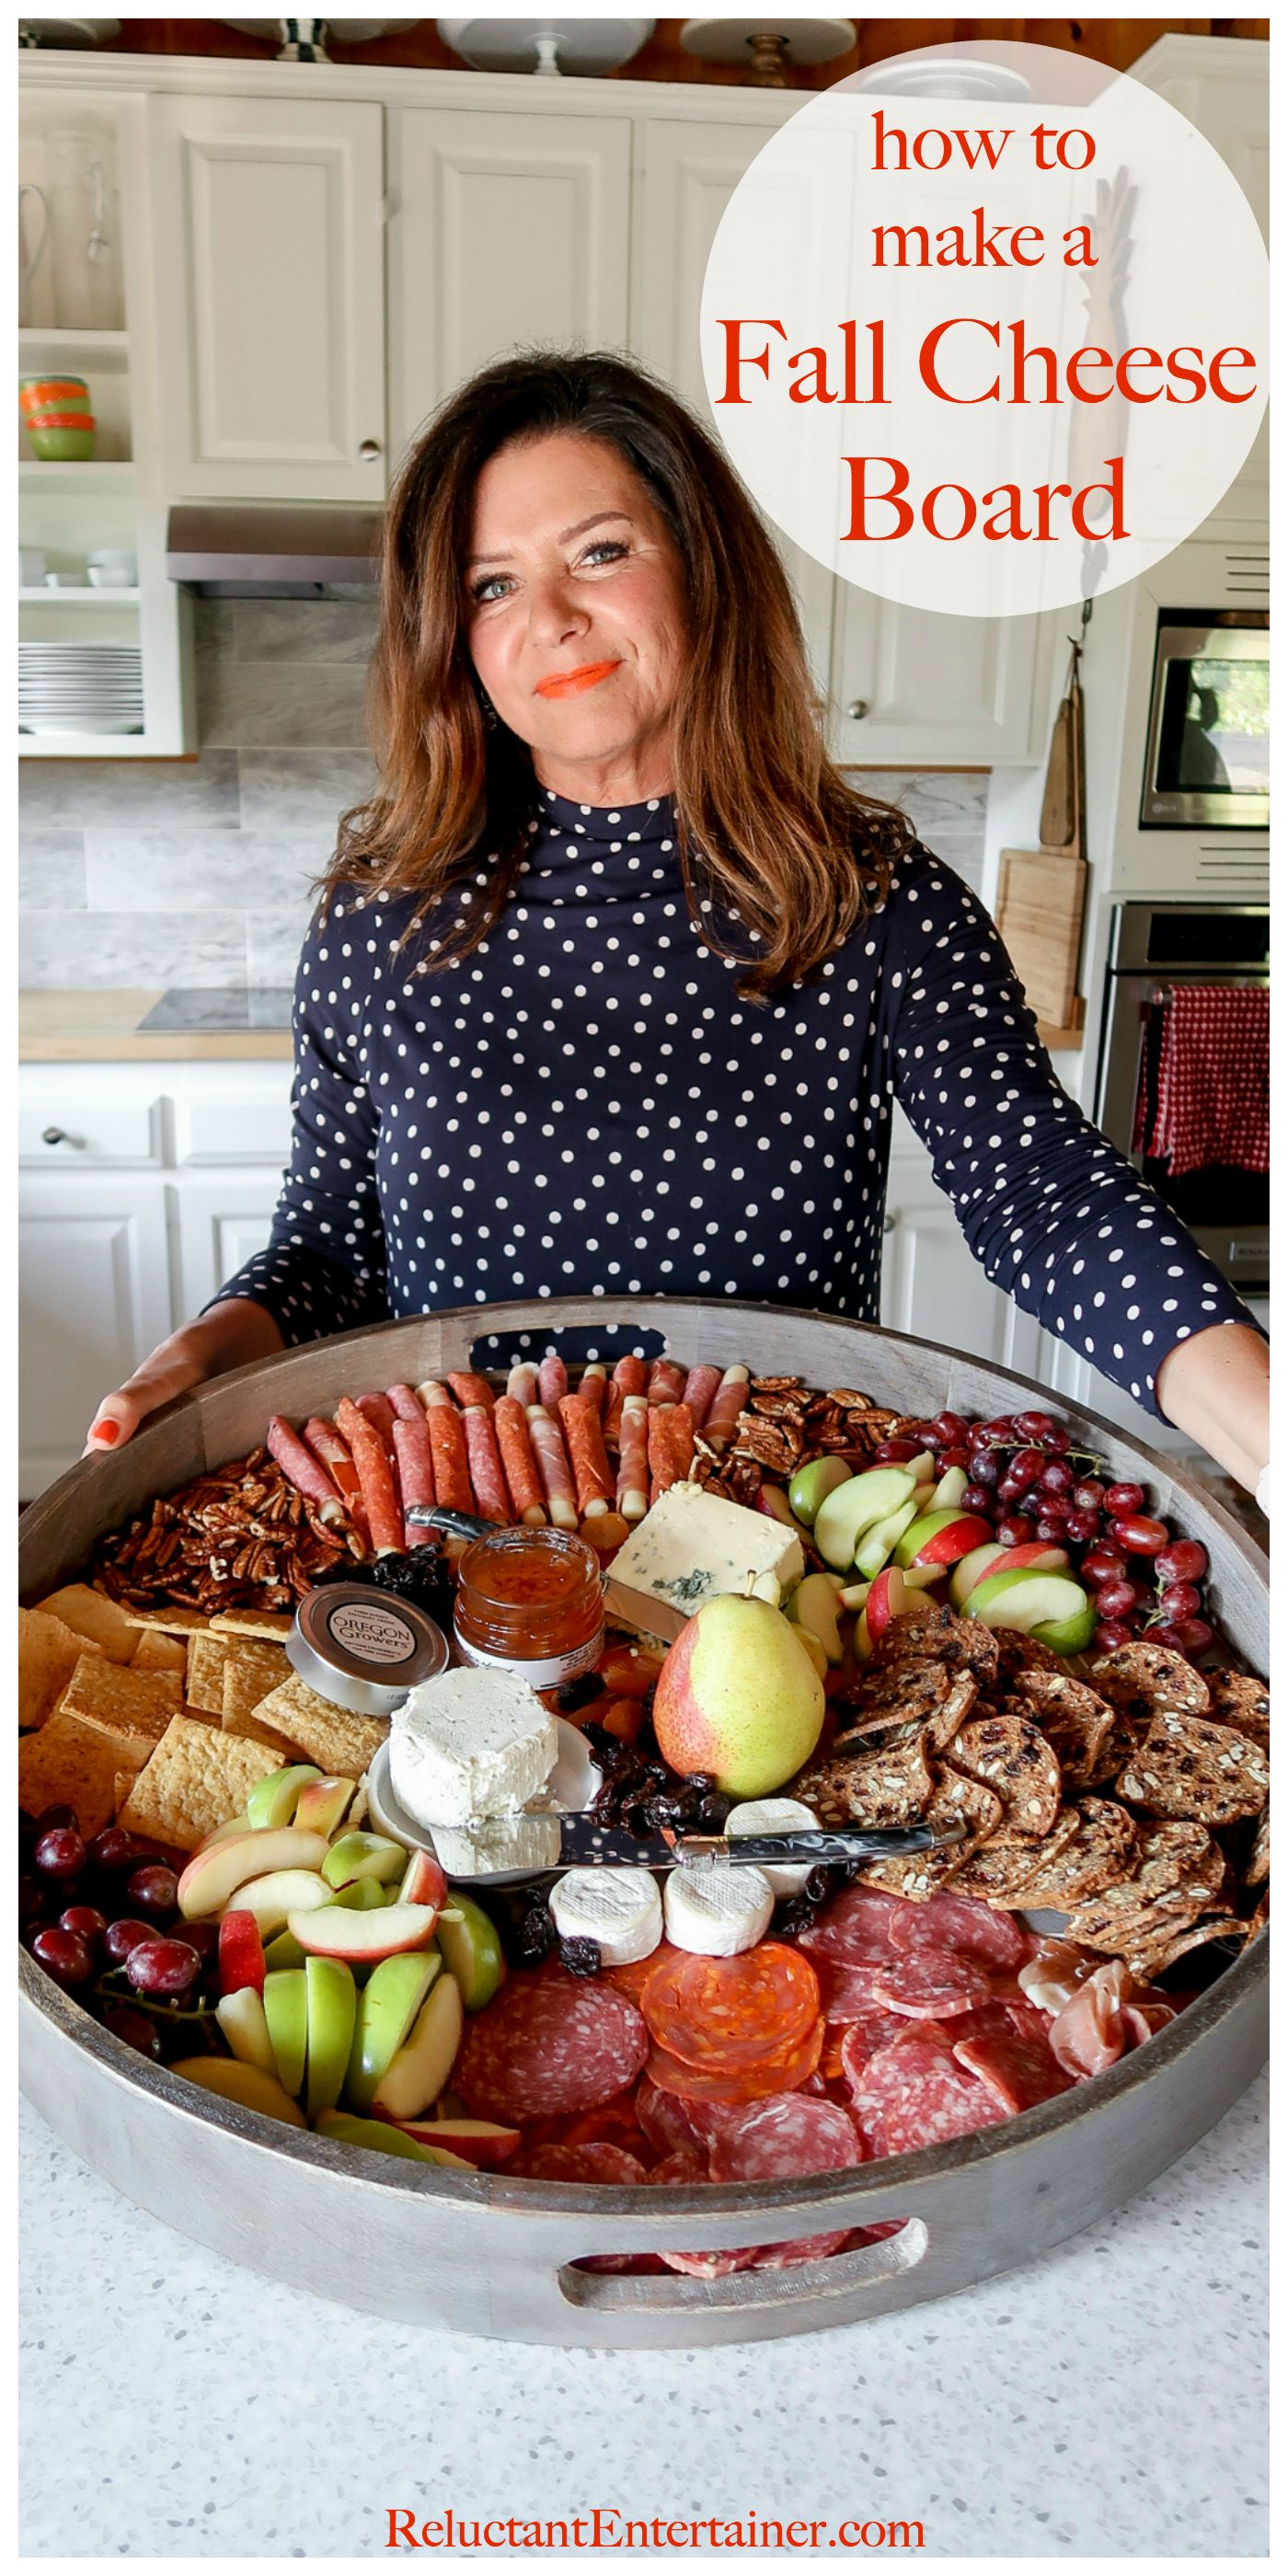 How to make a Fall Cheese Board - Reluctant Entertainer